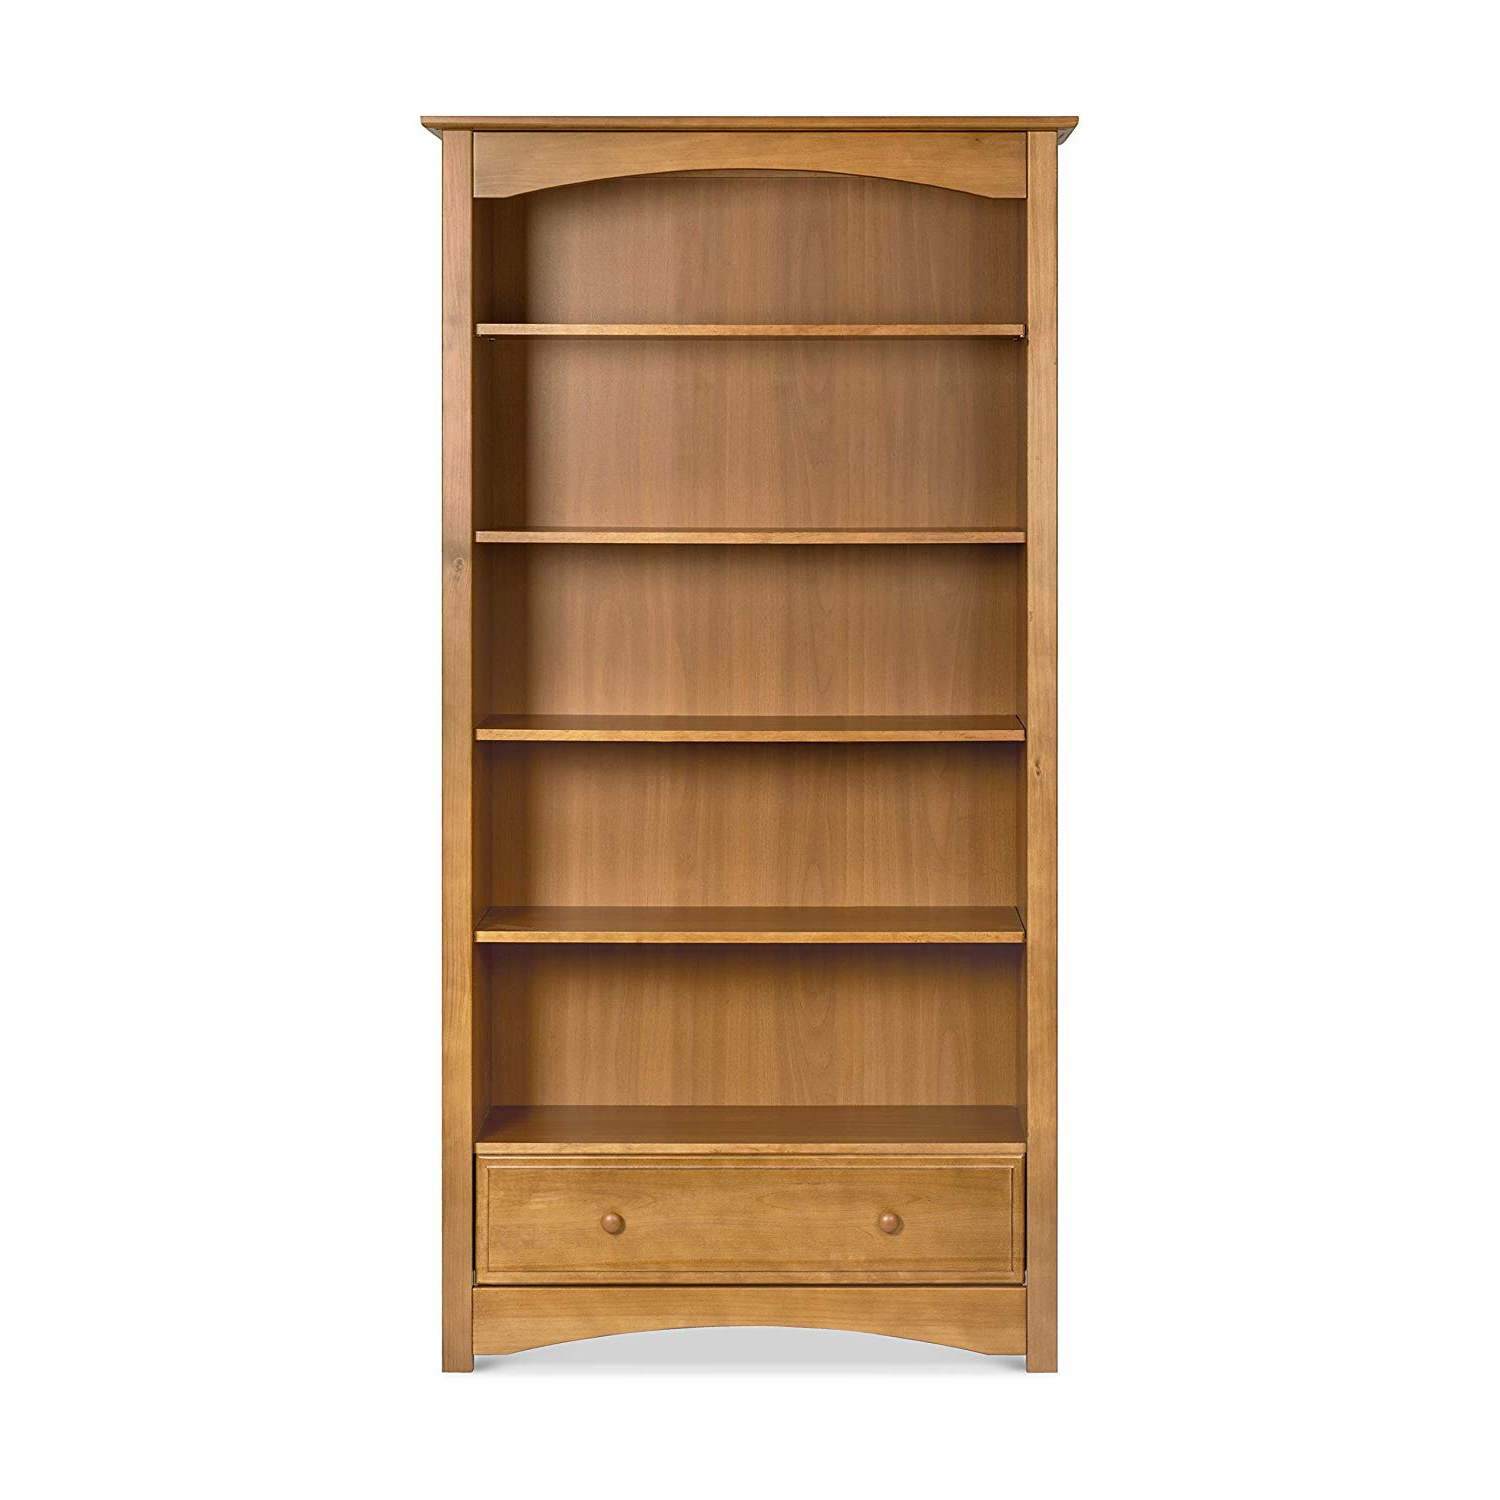 Mdb Standard Bookcases Pertaining To Trendy Davinci Mdb Book Case, White (View 6 of 20)